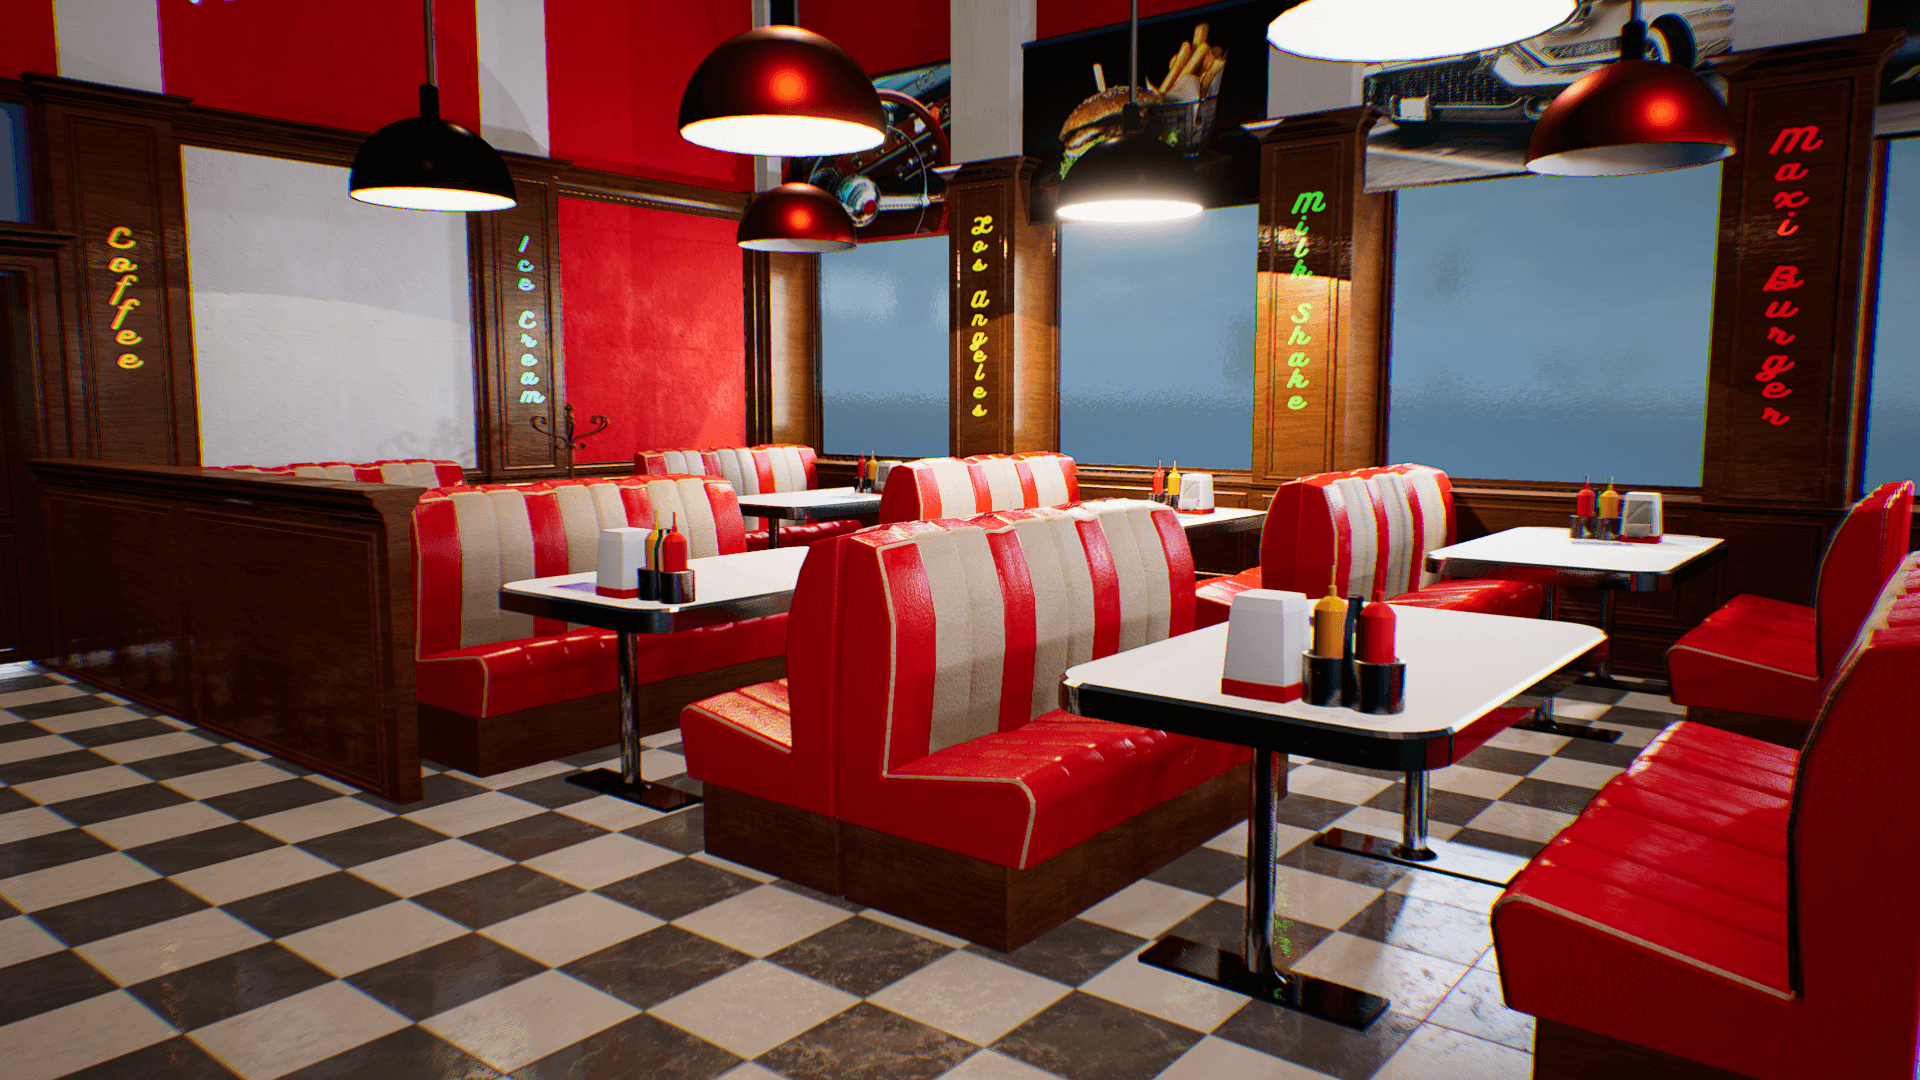 An image showing American Food Restaurant asset pack, created with Unreal Engine.